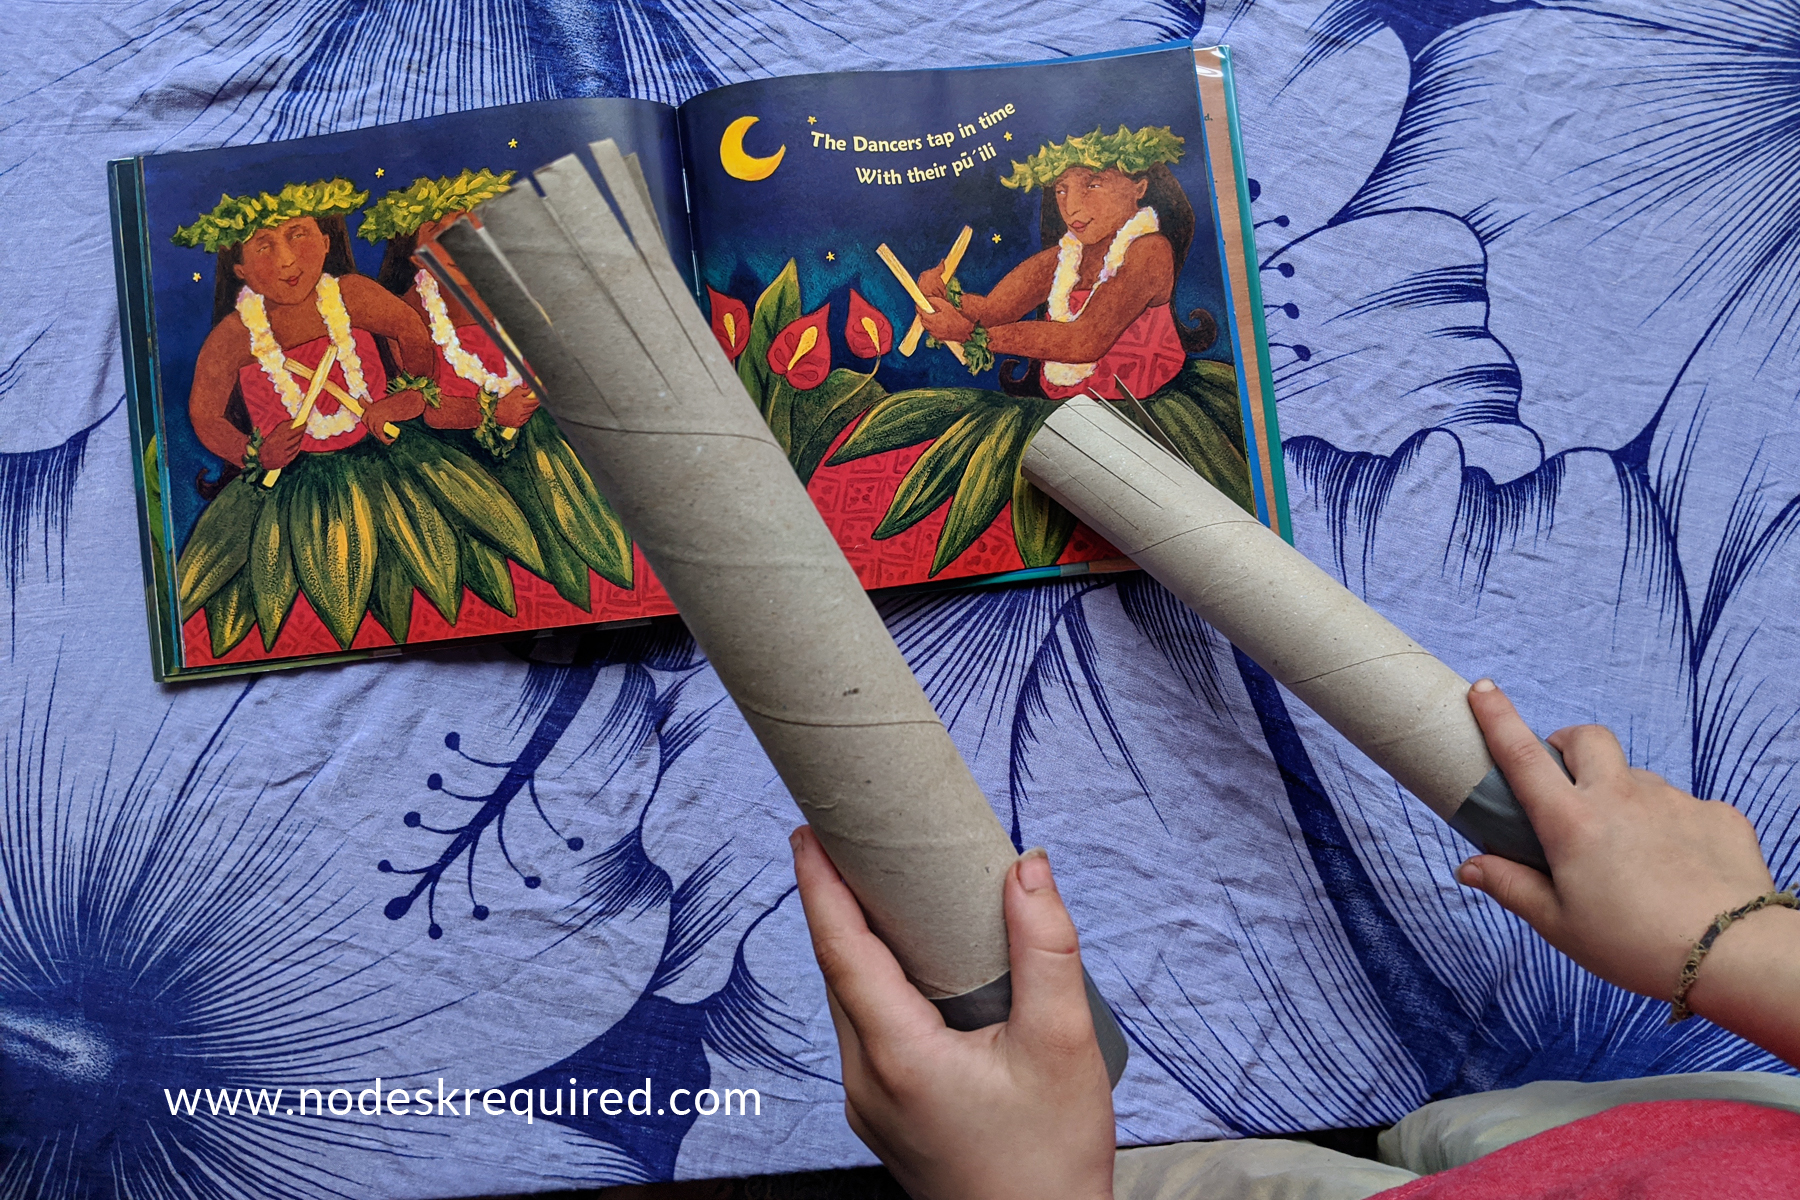 playing cardboard tube pu'ili Hawaiian rhythm sticks on open Hula Lullaby book